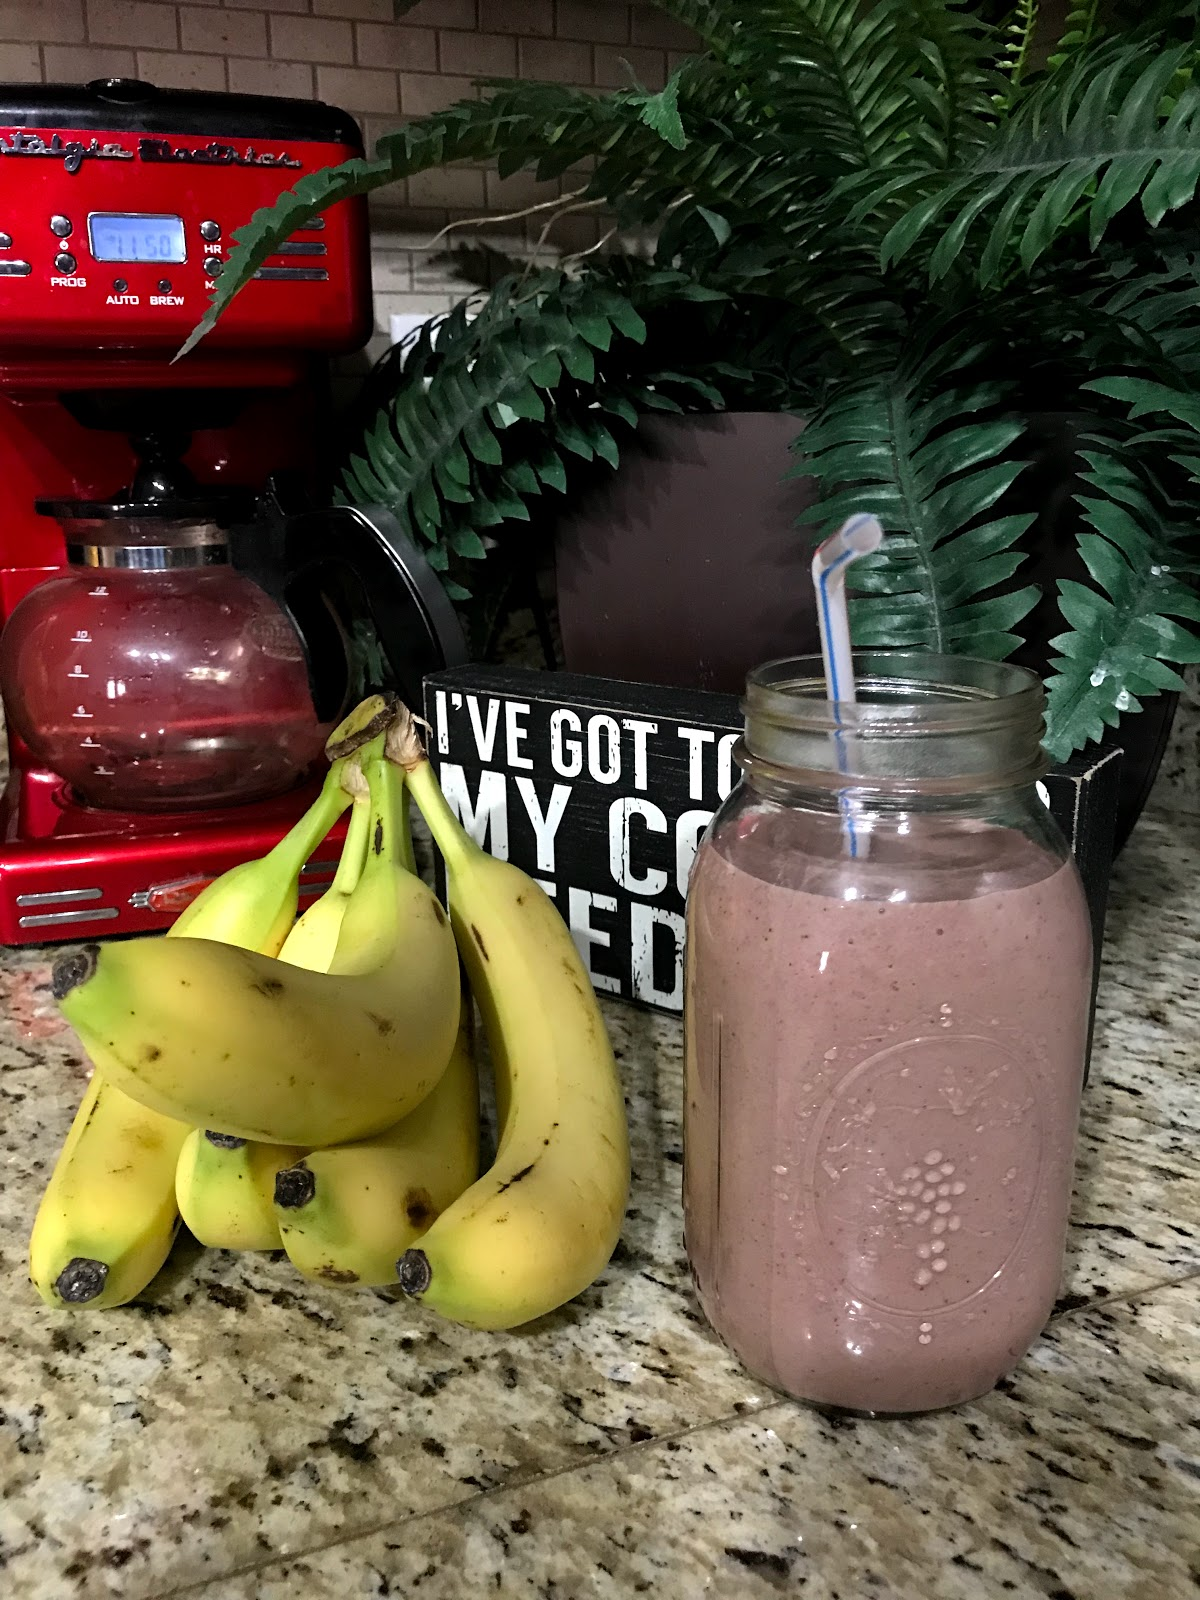 Image: Bananas, Smoothie Drink Coffee Pot In Back ground for blog post.